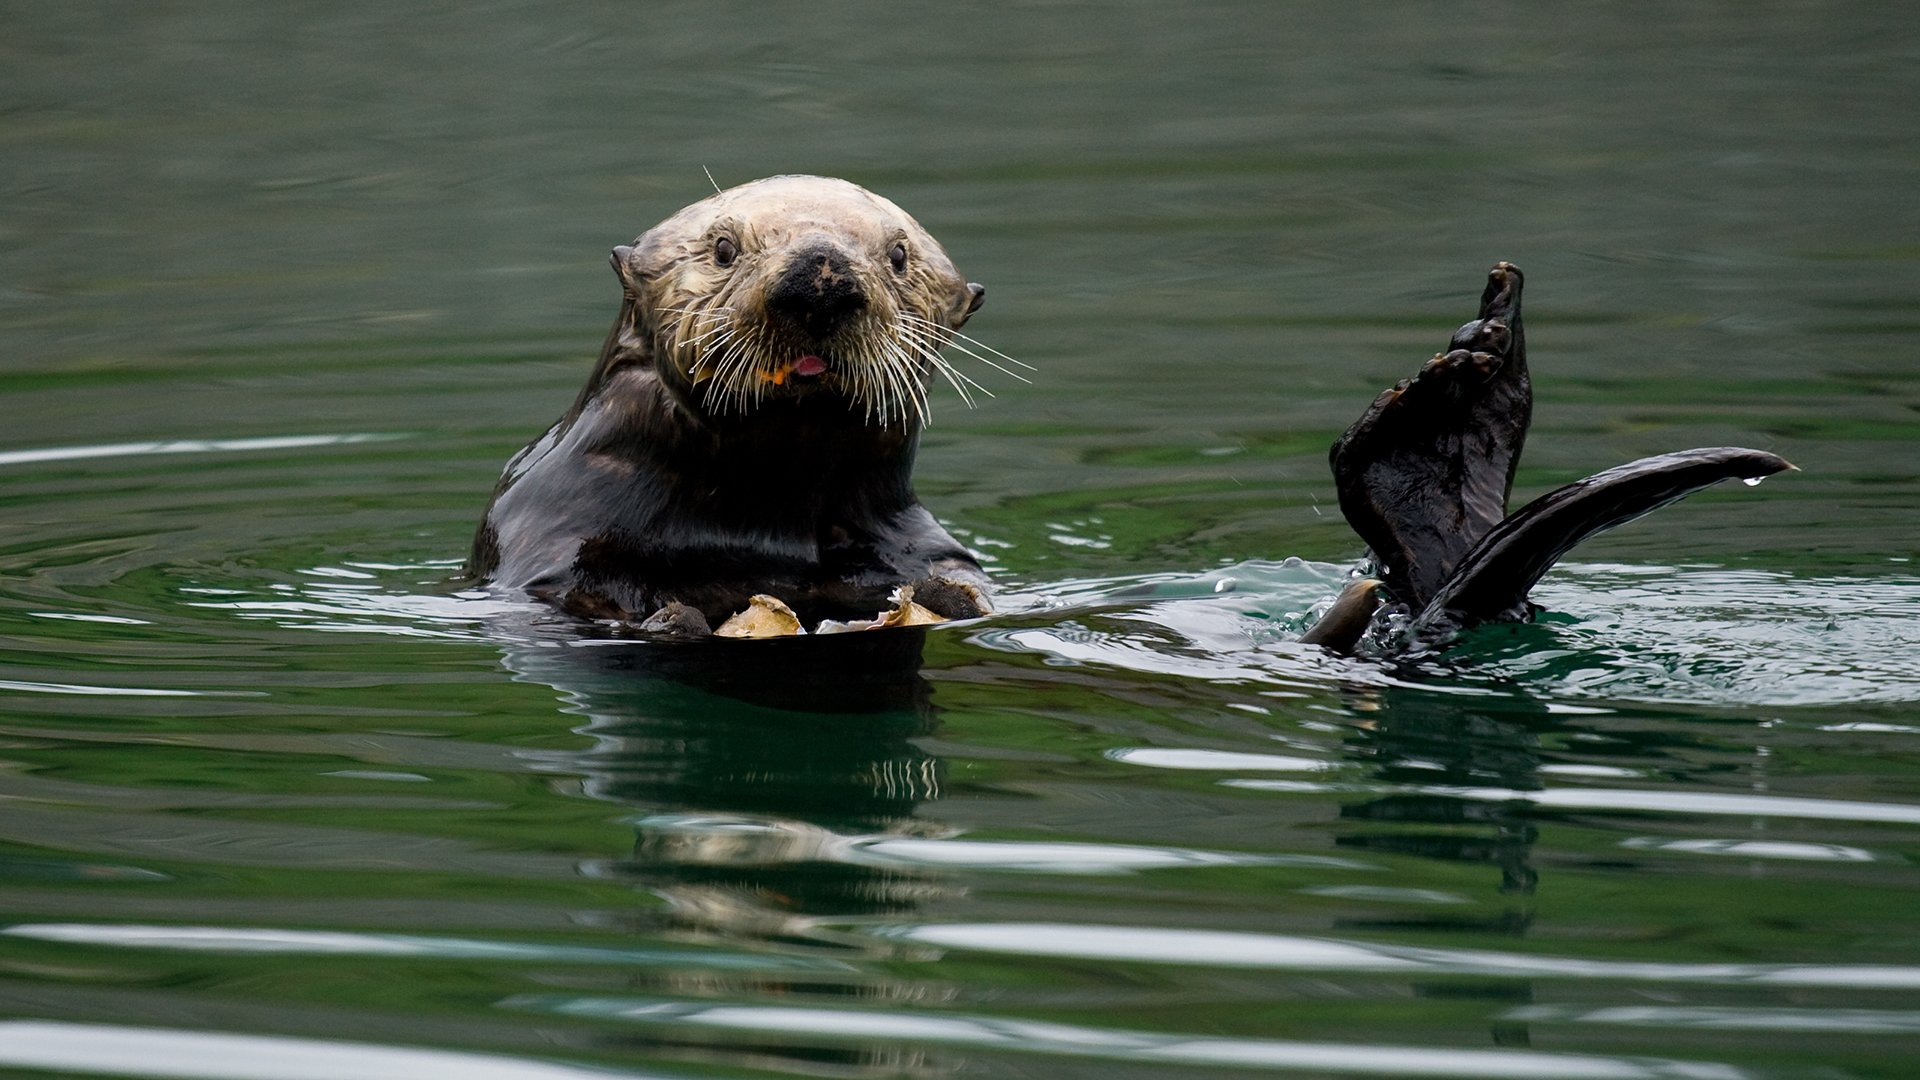 Meet the Southern Sea Otter